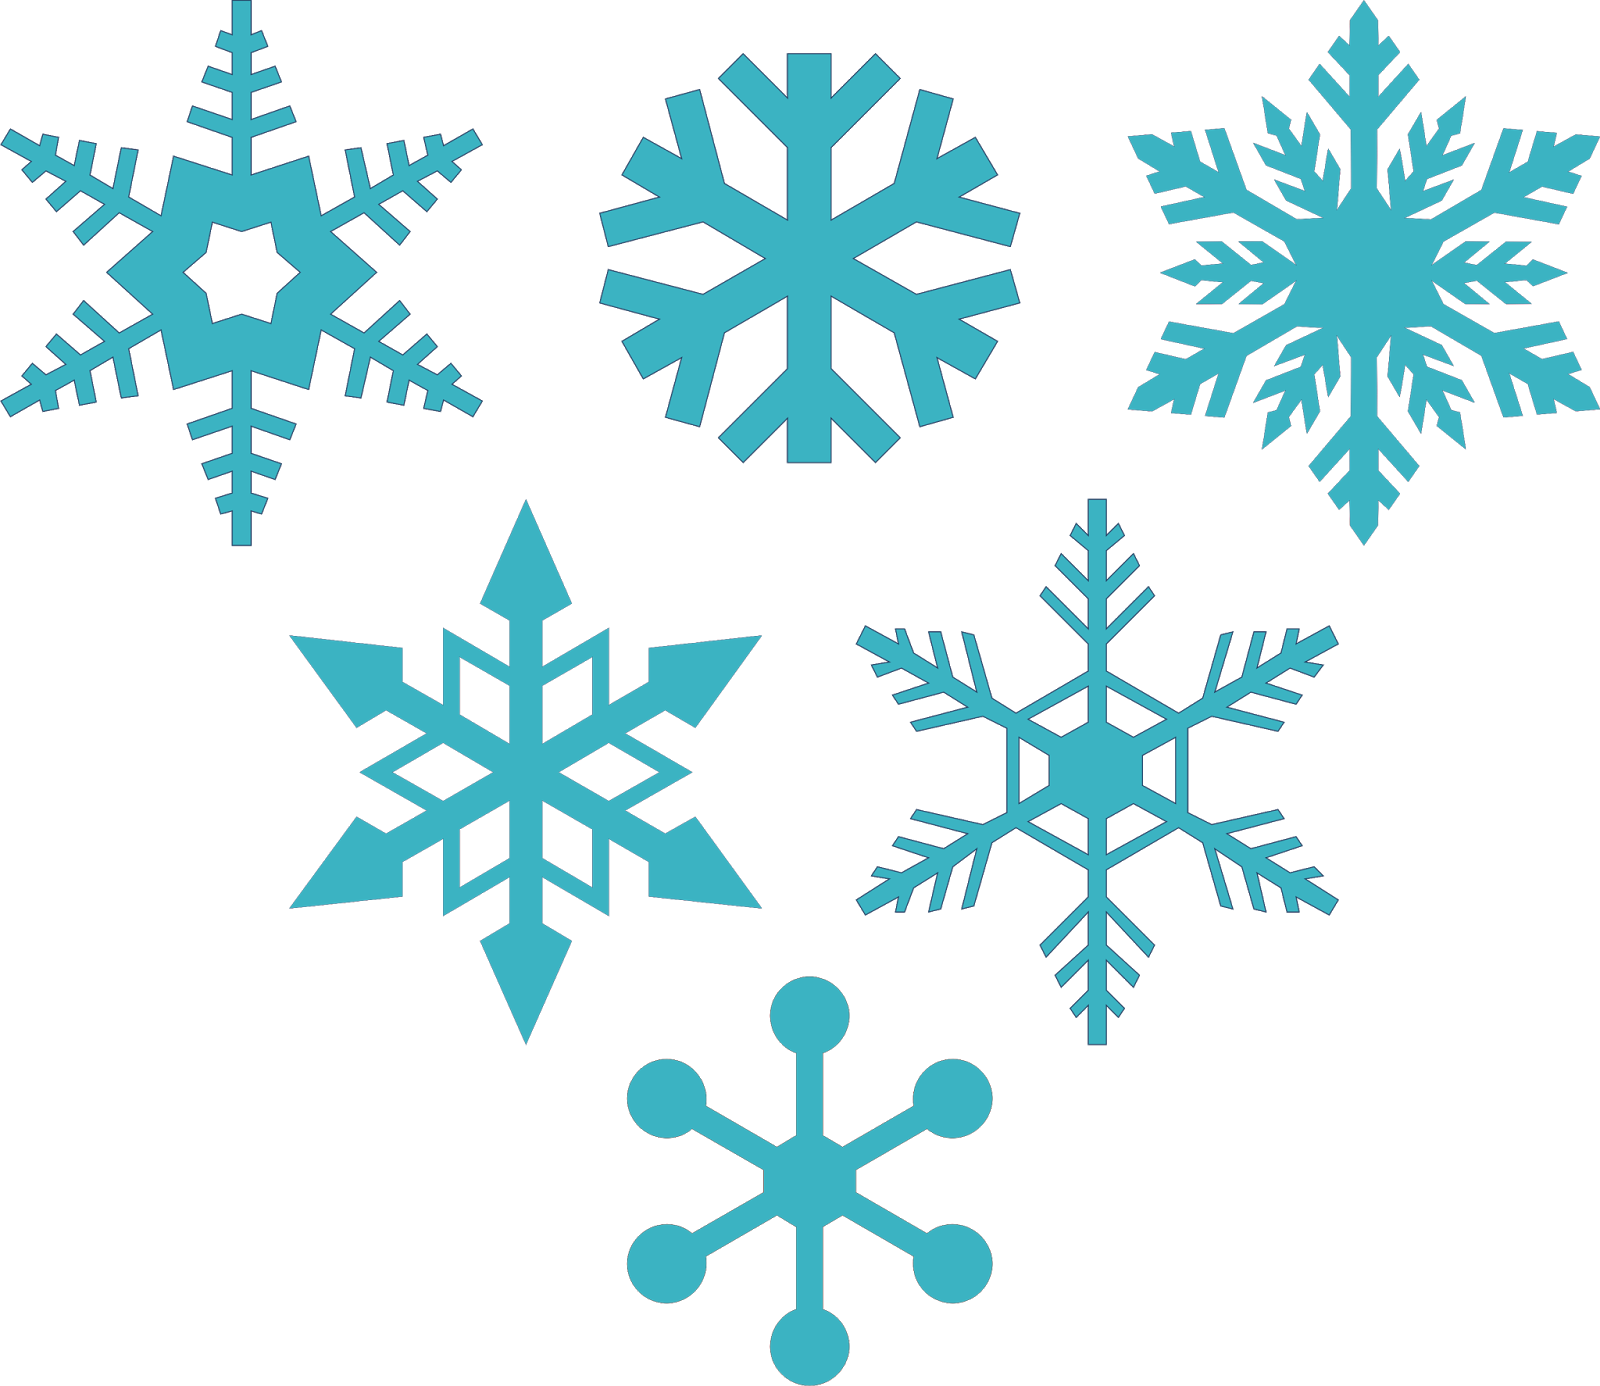 Frozen snowflakes png. Free snowflake images the